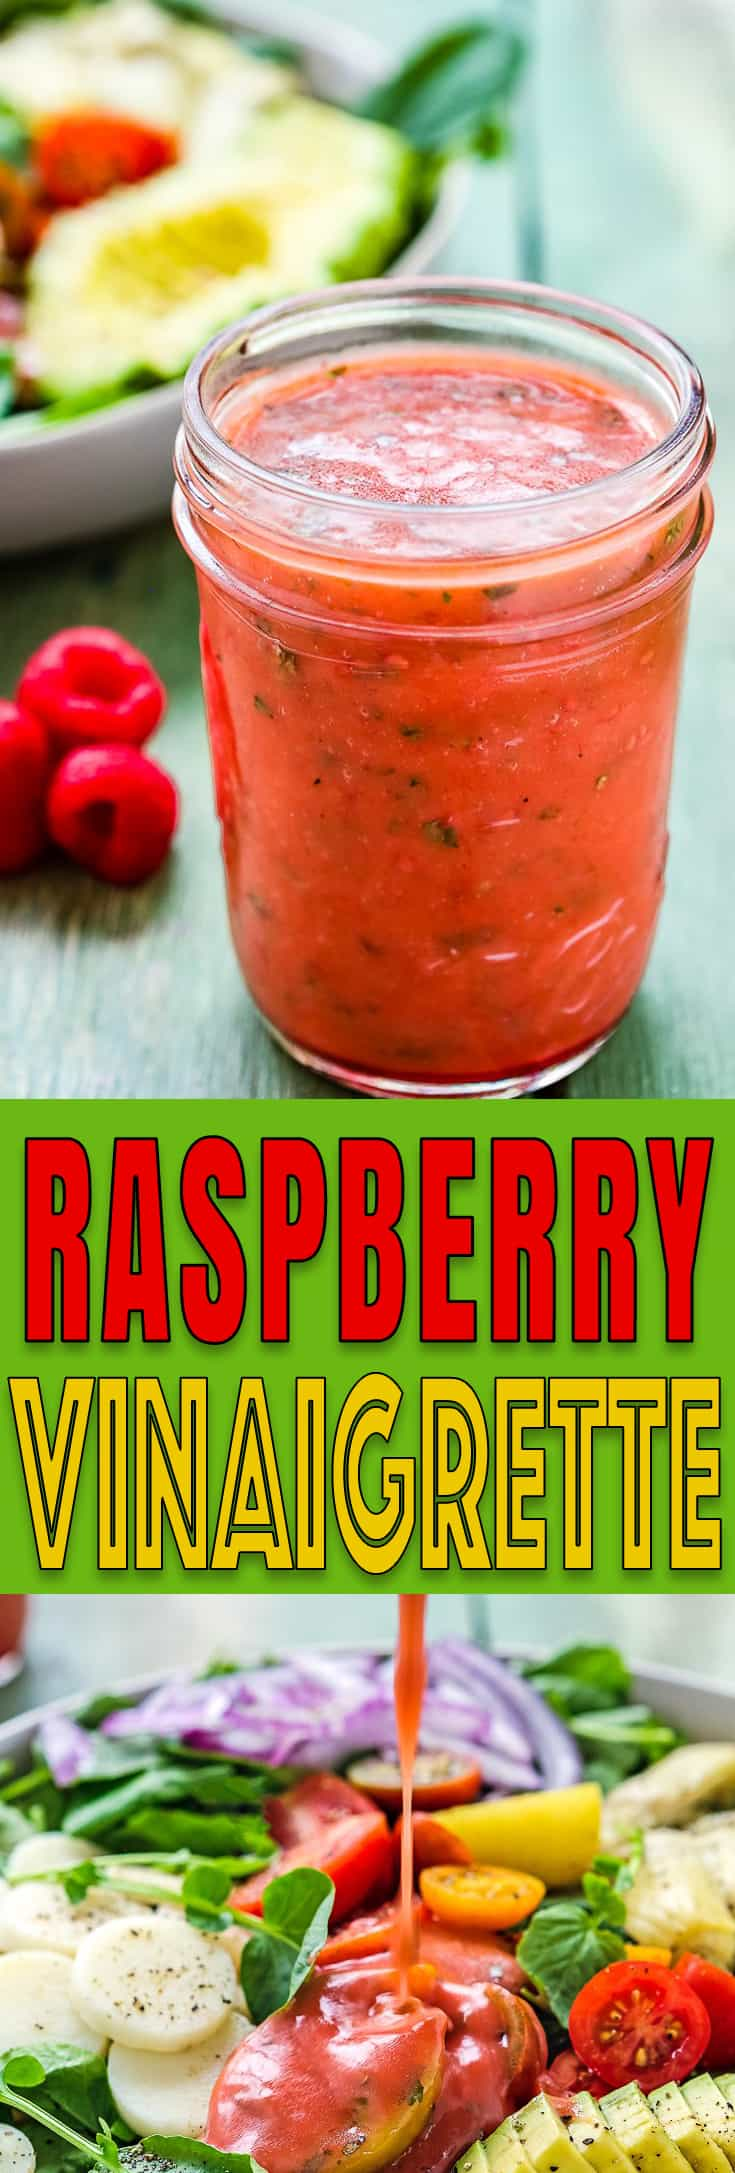 This Raspberry Vinaigrette is ridiculously easy to make with a few pantry staples. It's sweet, tangy, delicious, and will make an ordinary salad stand out. https://mommyshomecooking.com